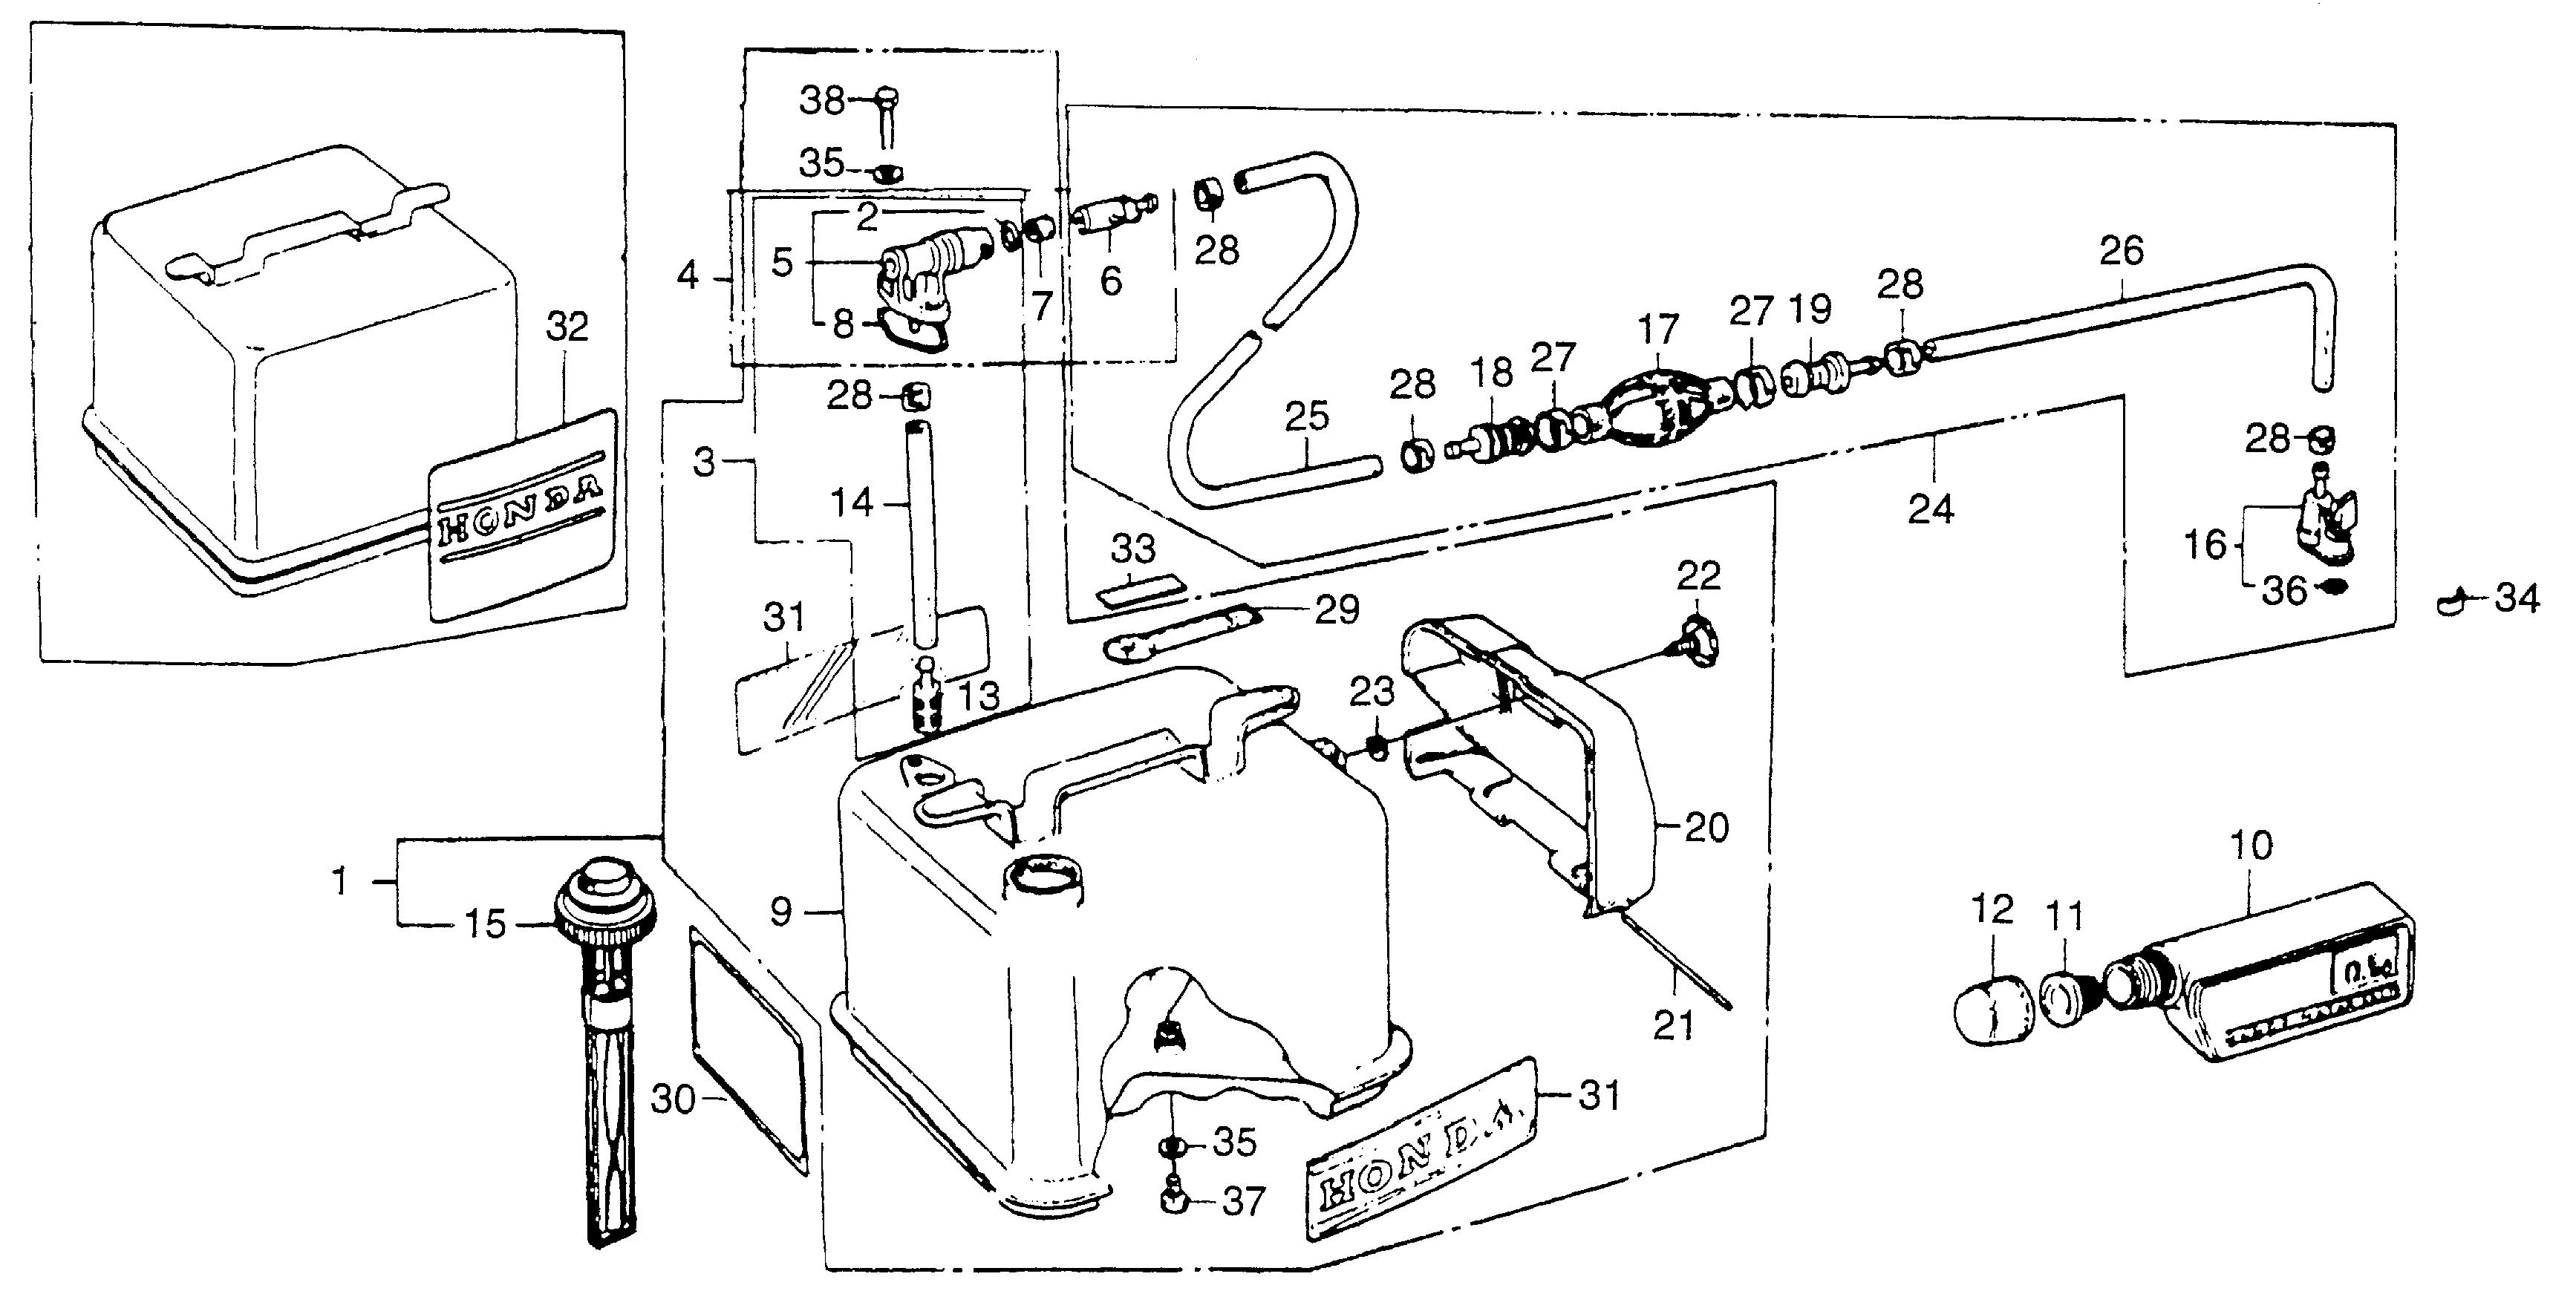 Honda Bf75 Wiring Diagram 225 Outboard Cooling System Bf60 Marine Parts Look Up Official Site On Bf